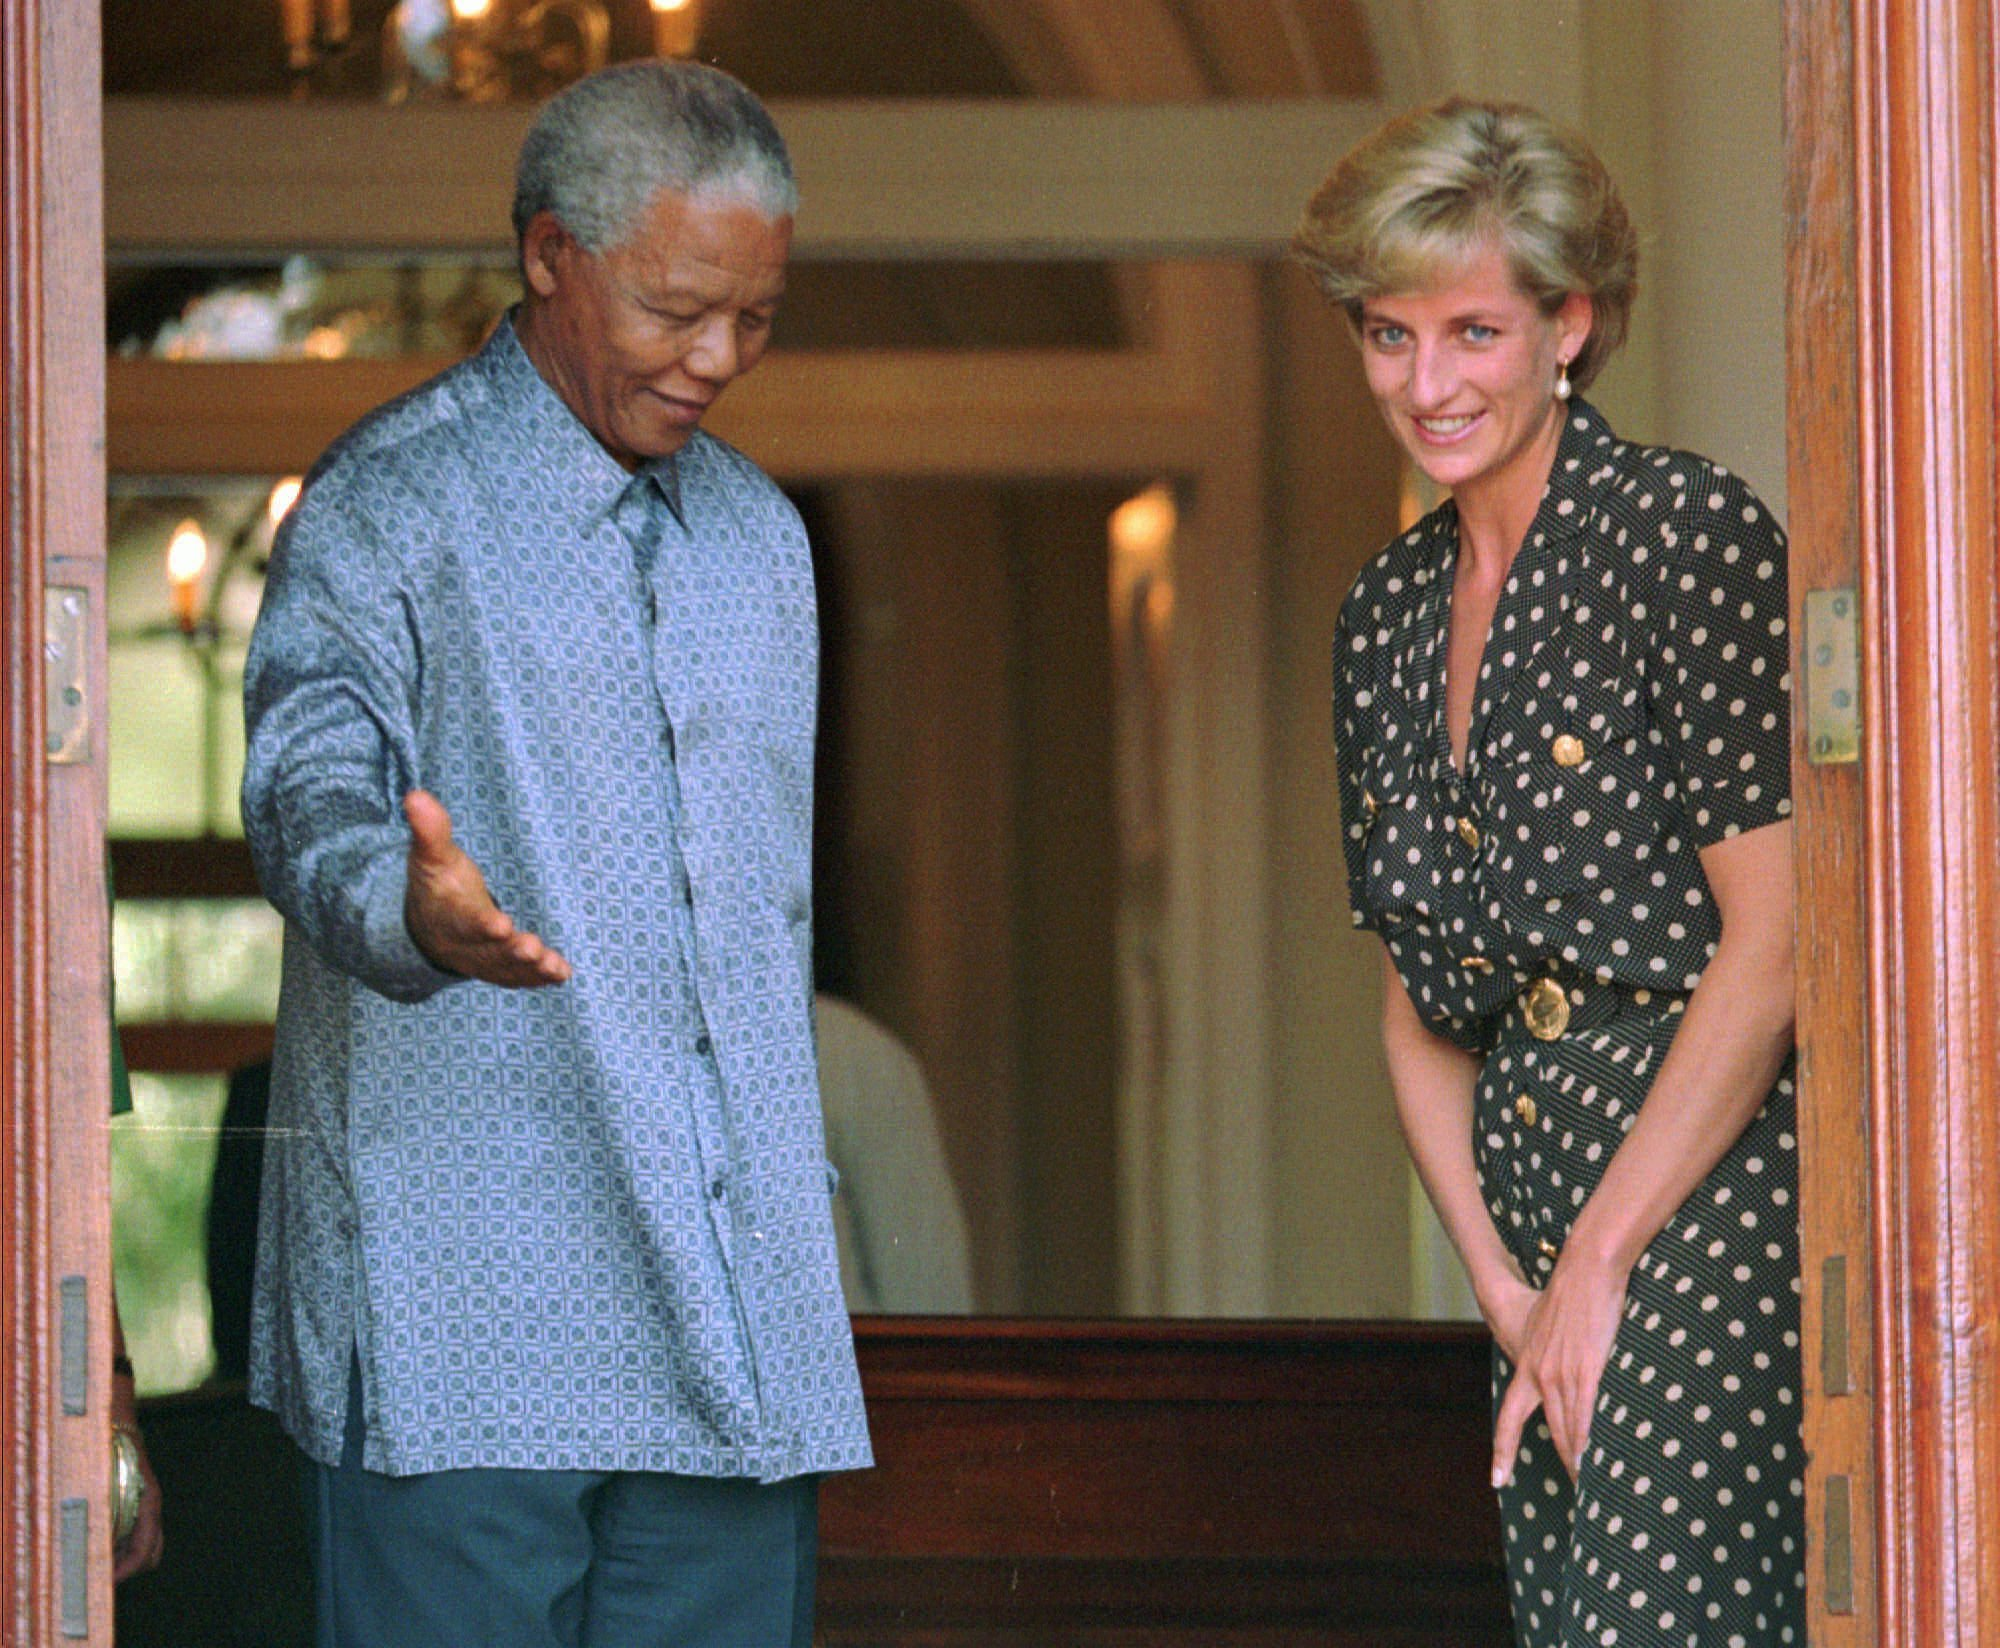 "FILE - In this Monday, March 17, 1997 file photo, South African President Nelson Mandela, left, shows the way to Princess Diana, during a meeting in Cape Town. It has been 20 years since the death of Princess Diana in a car crash in Paris and the outpouring of grief that followed the death of the ""people's princess."" (AP Photo/Sasa Kralj, File)"